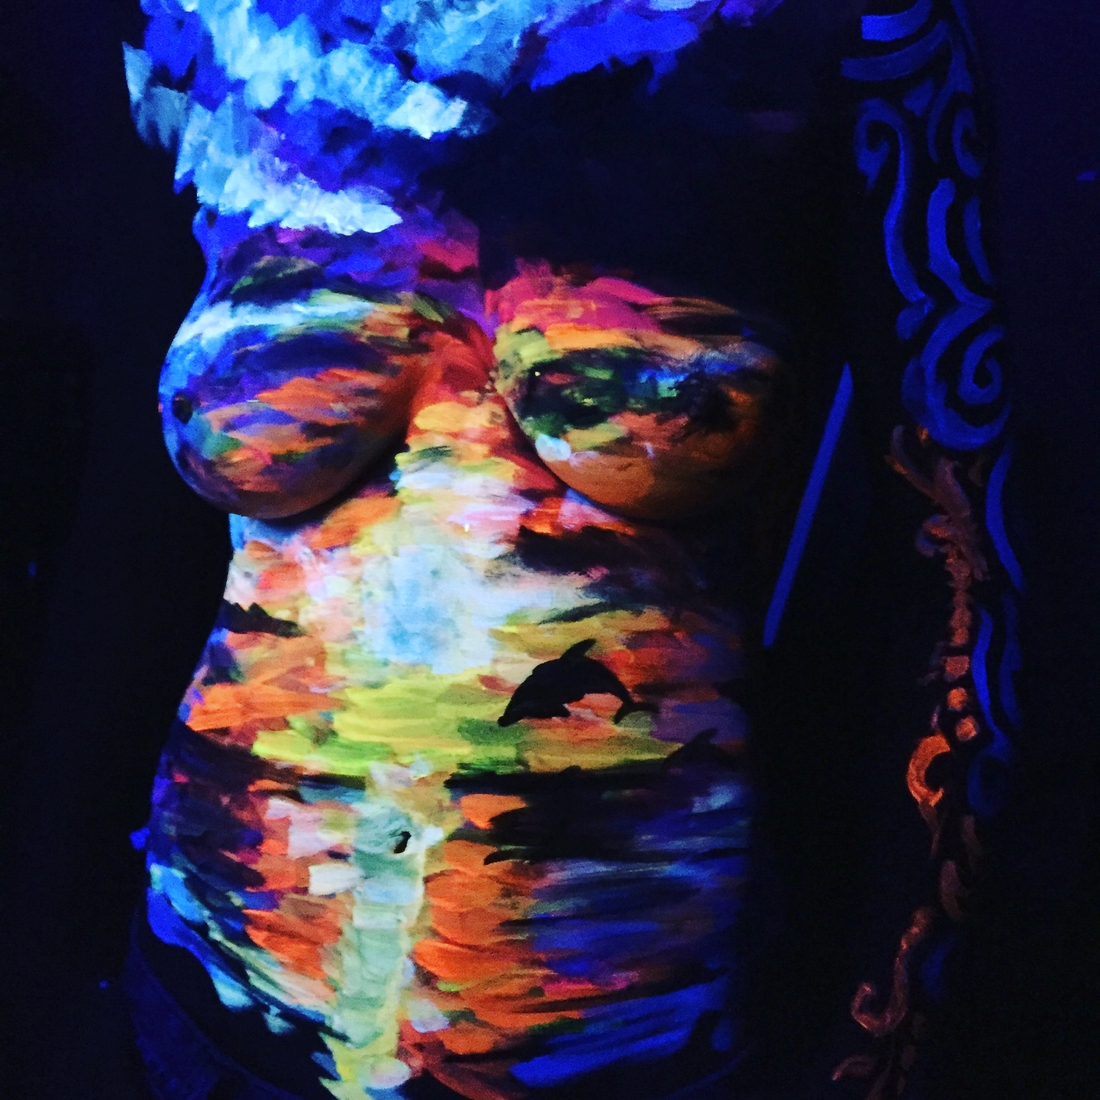 04-Carry-the-Ocean-Danny-Setiawan-Denart-Studio-Body-Painting-with-a-UV-Paint-and-a-Black-Light-www-designstack-co